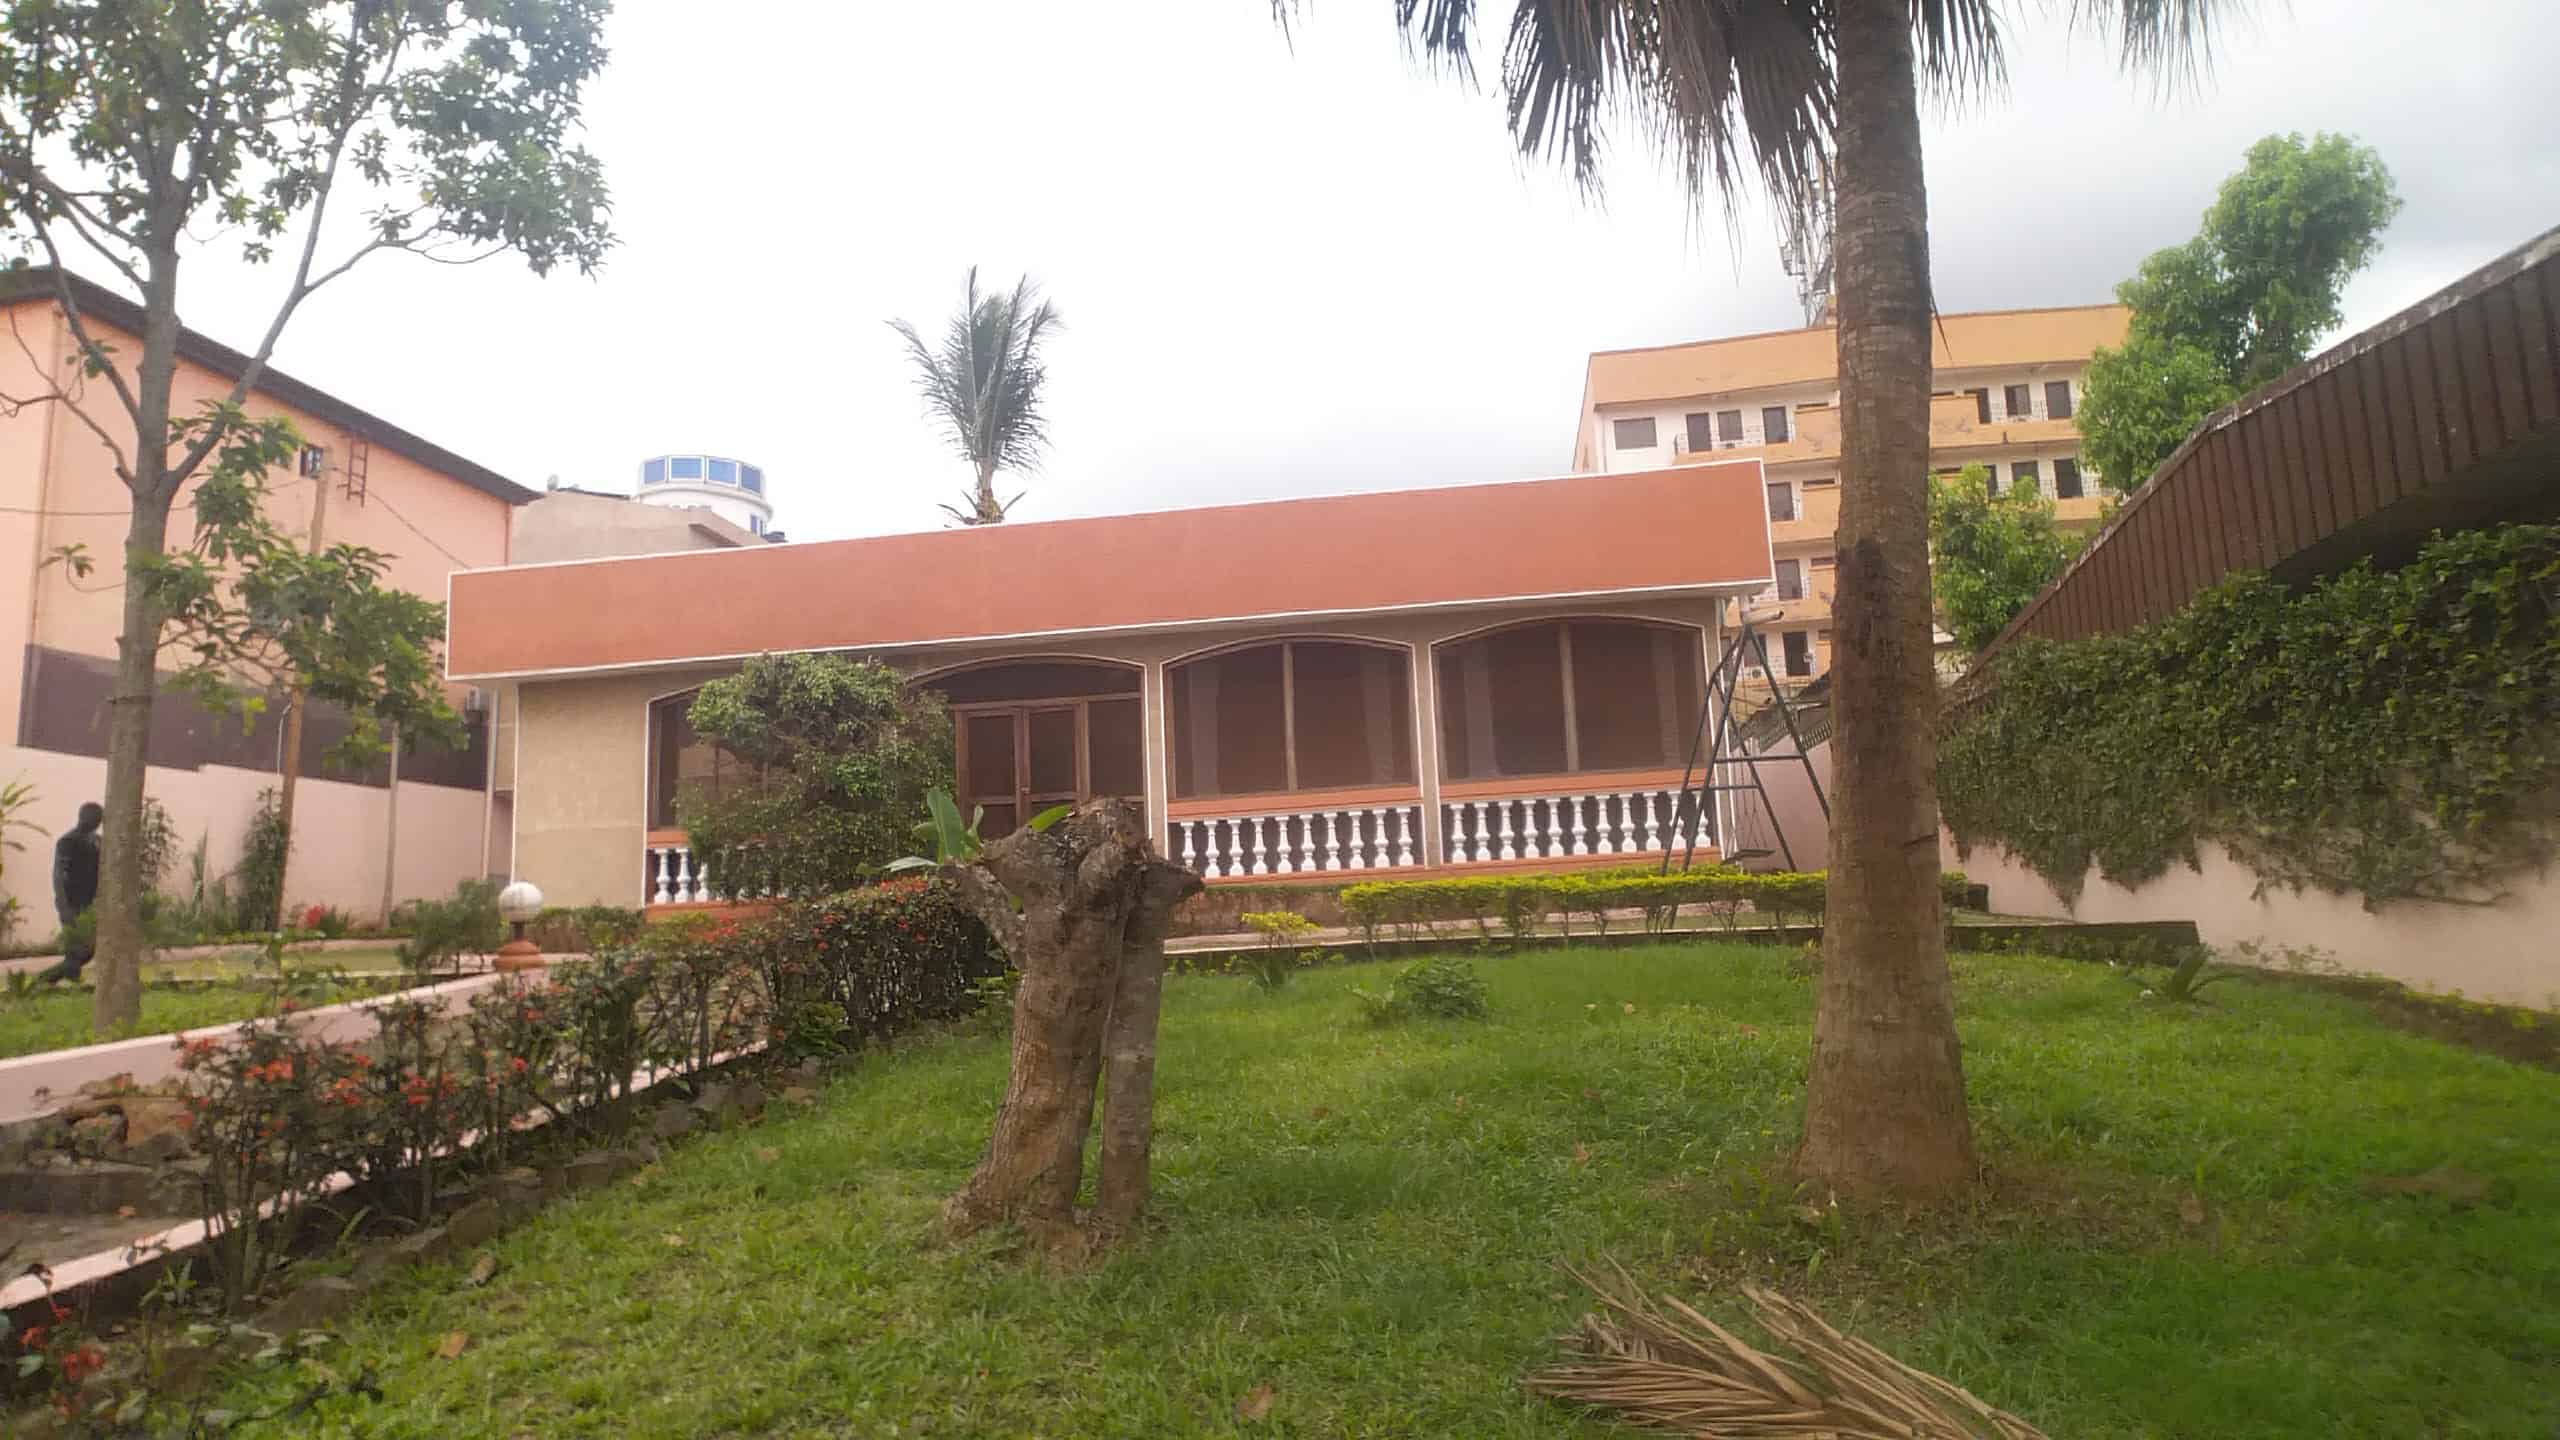 House (Villa) to rent - Yaoundé, Mfandena, Nouvelle route omnisport - 3 living room(s), 4 bedroom(s), 3 bathroom(s) - 900 000 FCFA / month